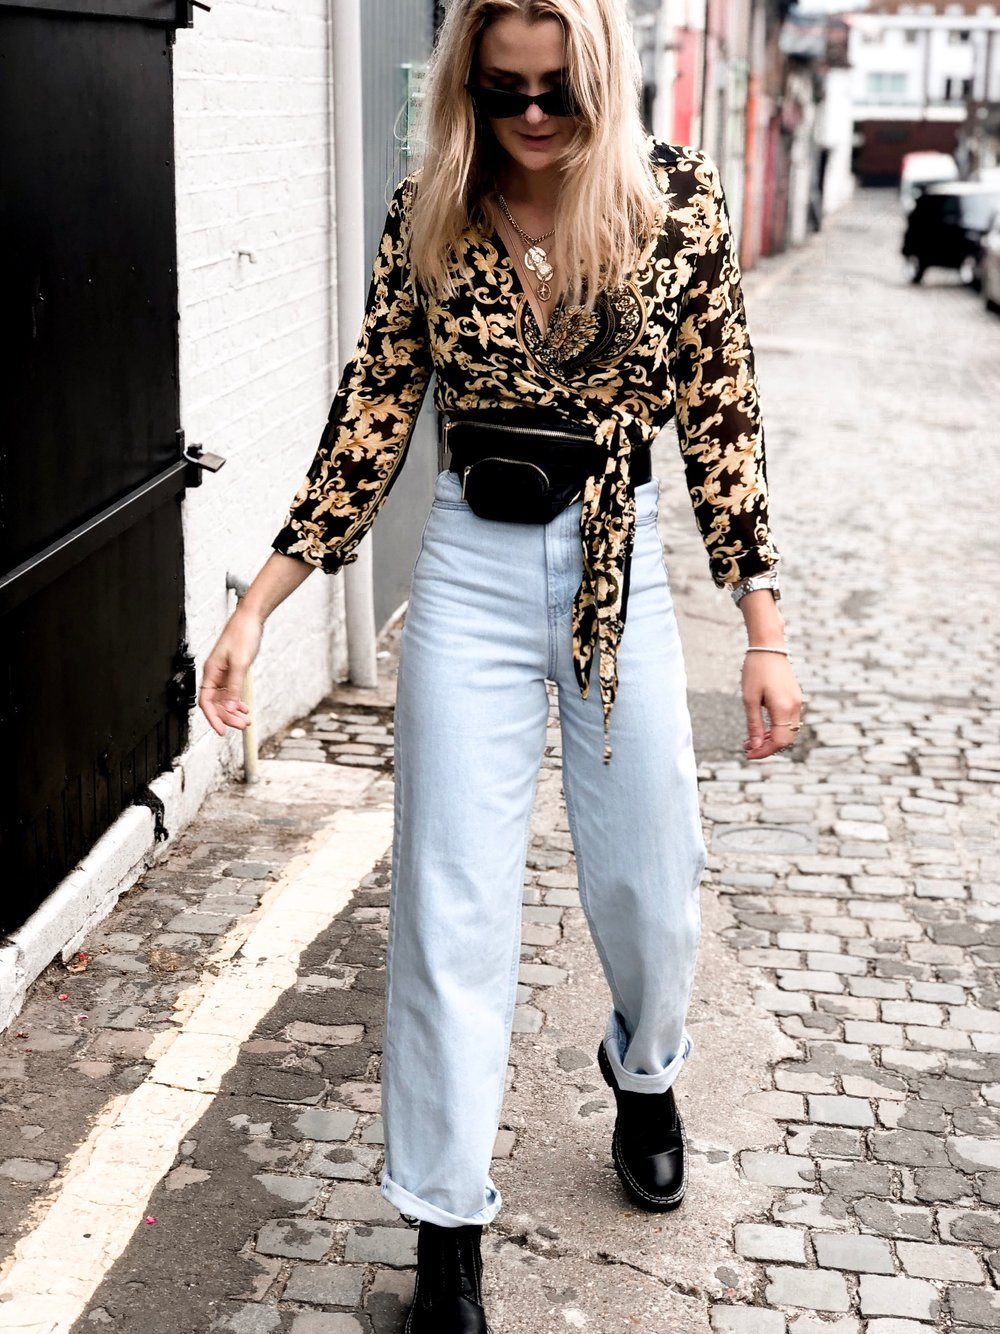 Top and Jewellery: Pretty Little Thing, Jeans: Zara, Boots: ASOS, Beltbag: Topshop